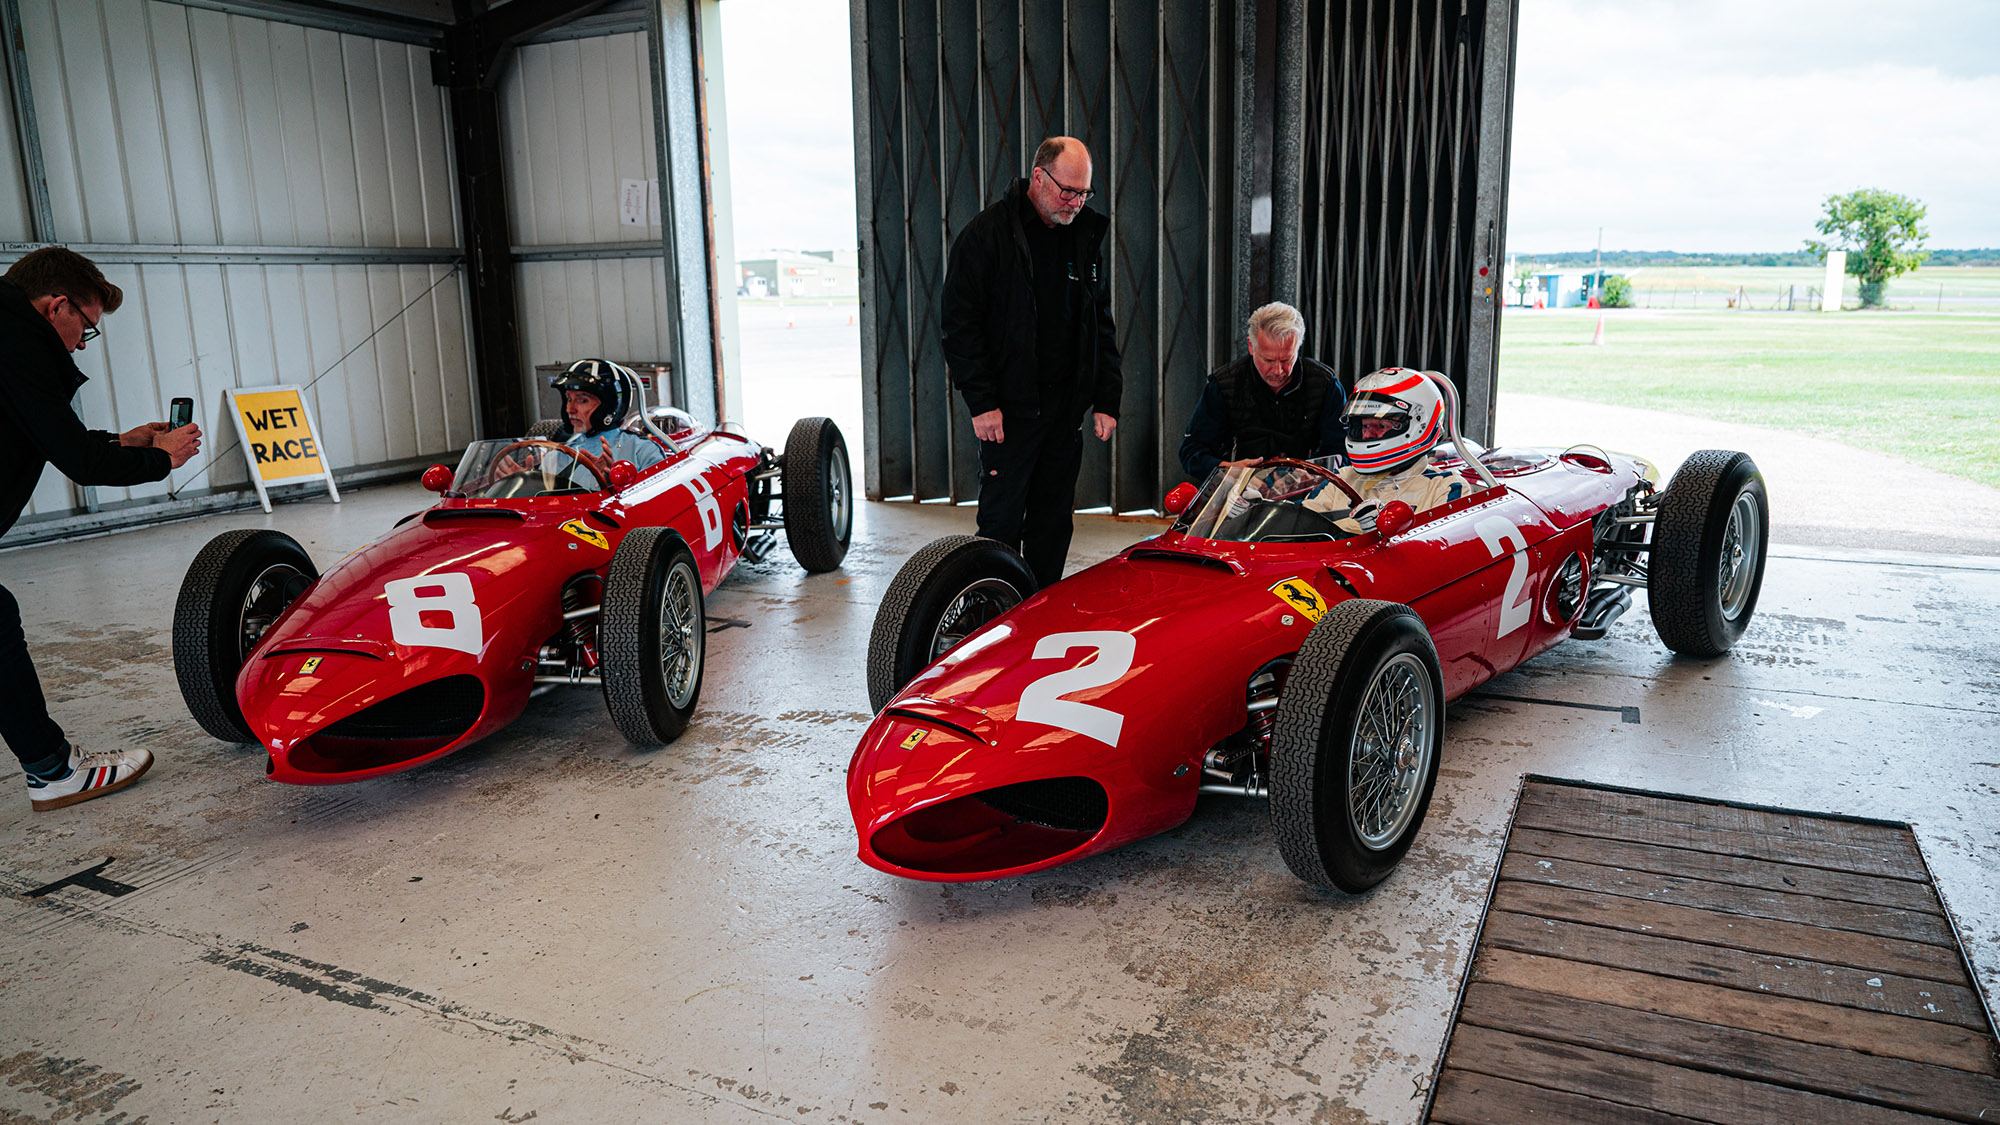 Damon Hill and Martin Brundle with Ferrari Sharknoses in Thruxton pit